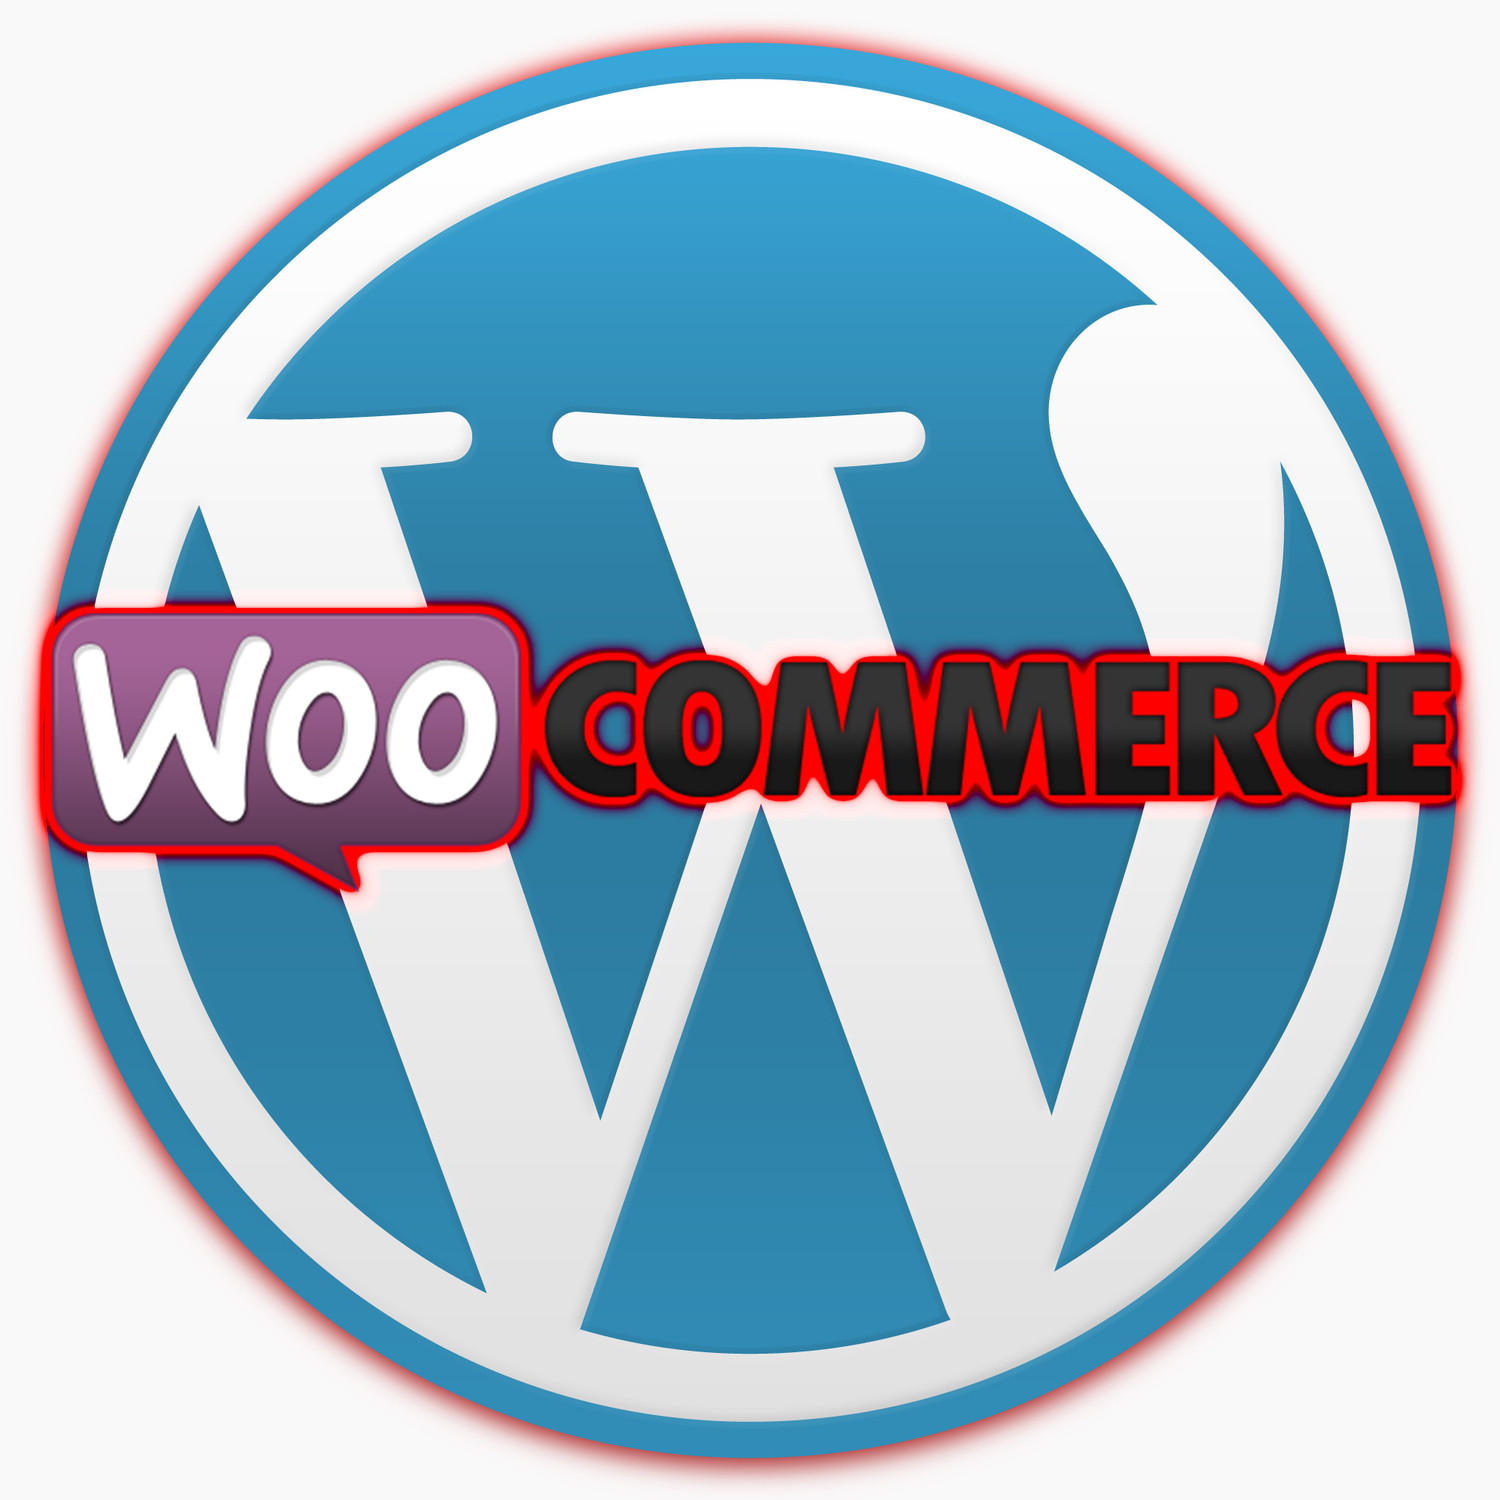 Fix, Solve or Customize Woocommerce Plugins by nyasro - 57252